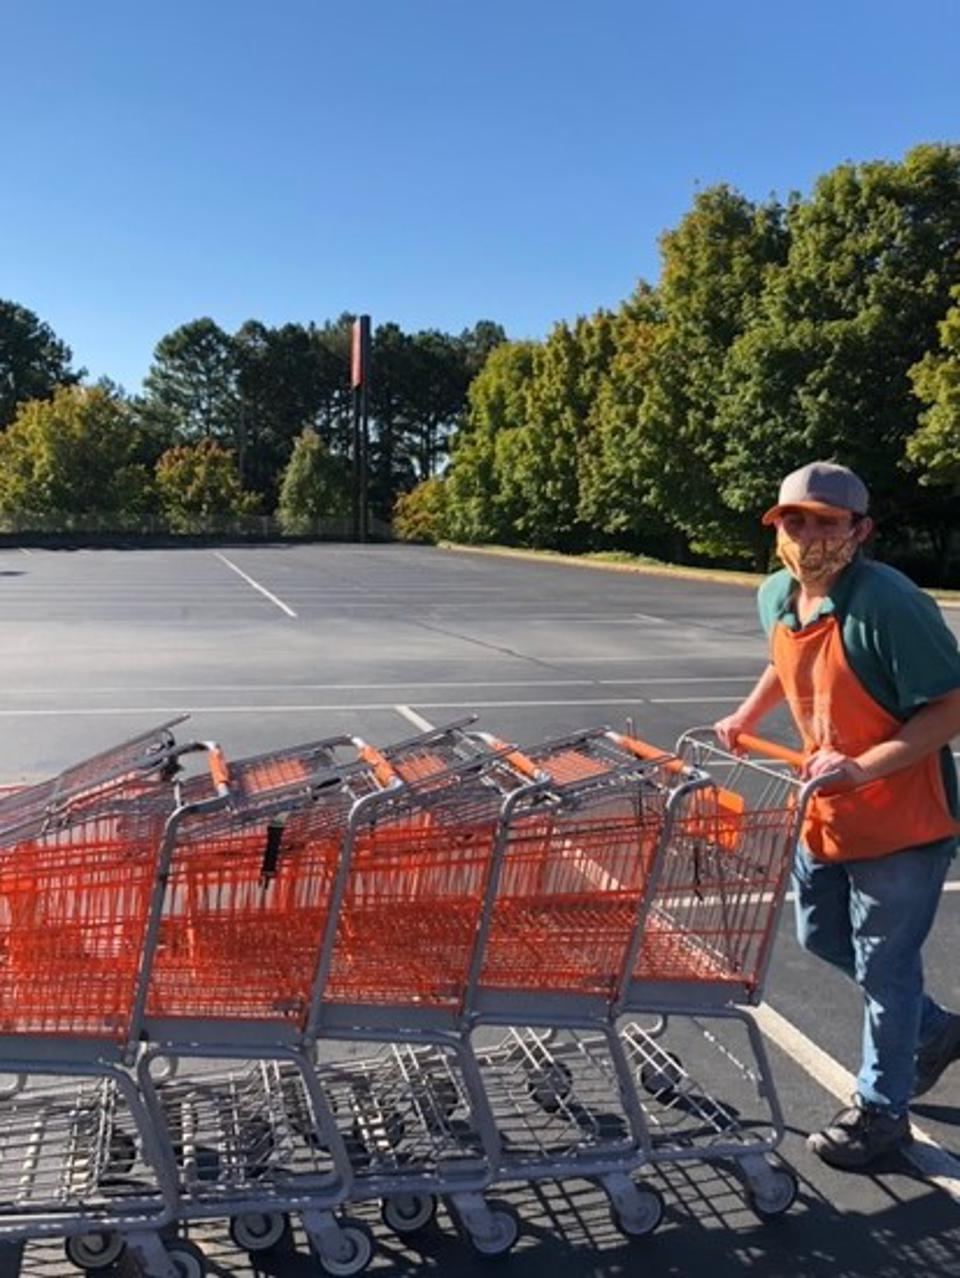 Noah Roberts of Ken's Krew at Home Depot working during the pandemic